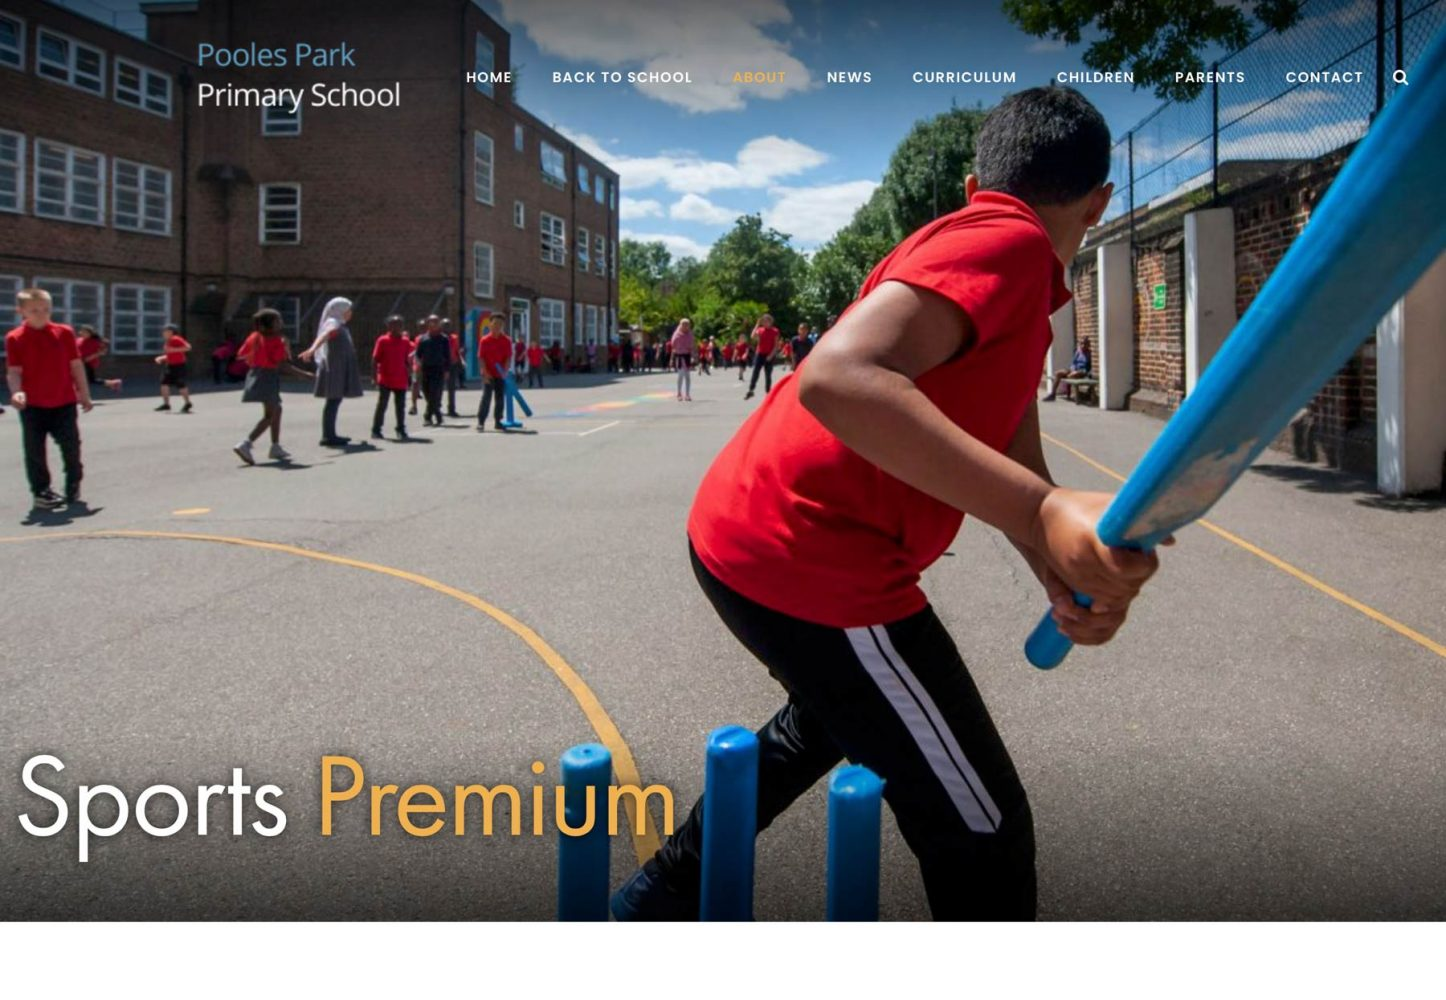 Islington School website photography screenshot of Sports Premium page.